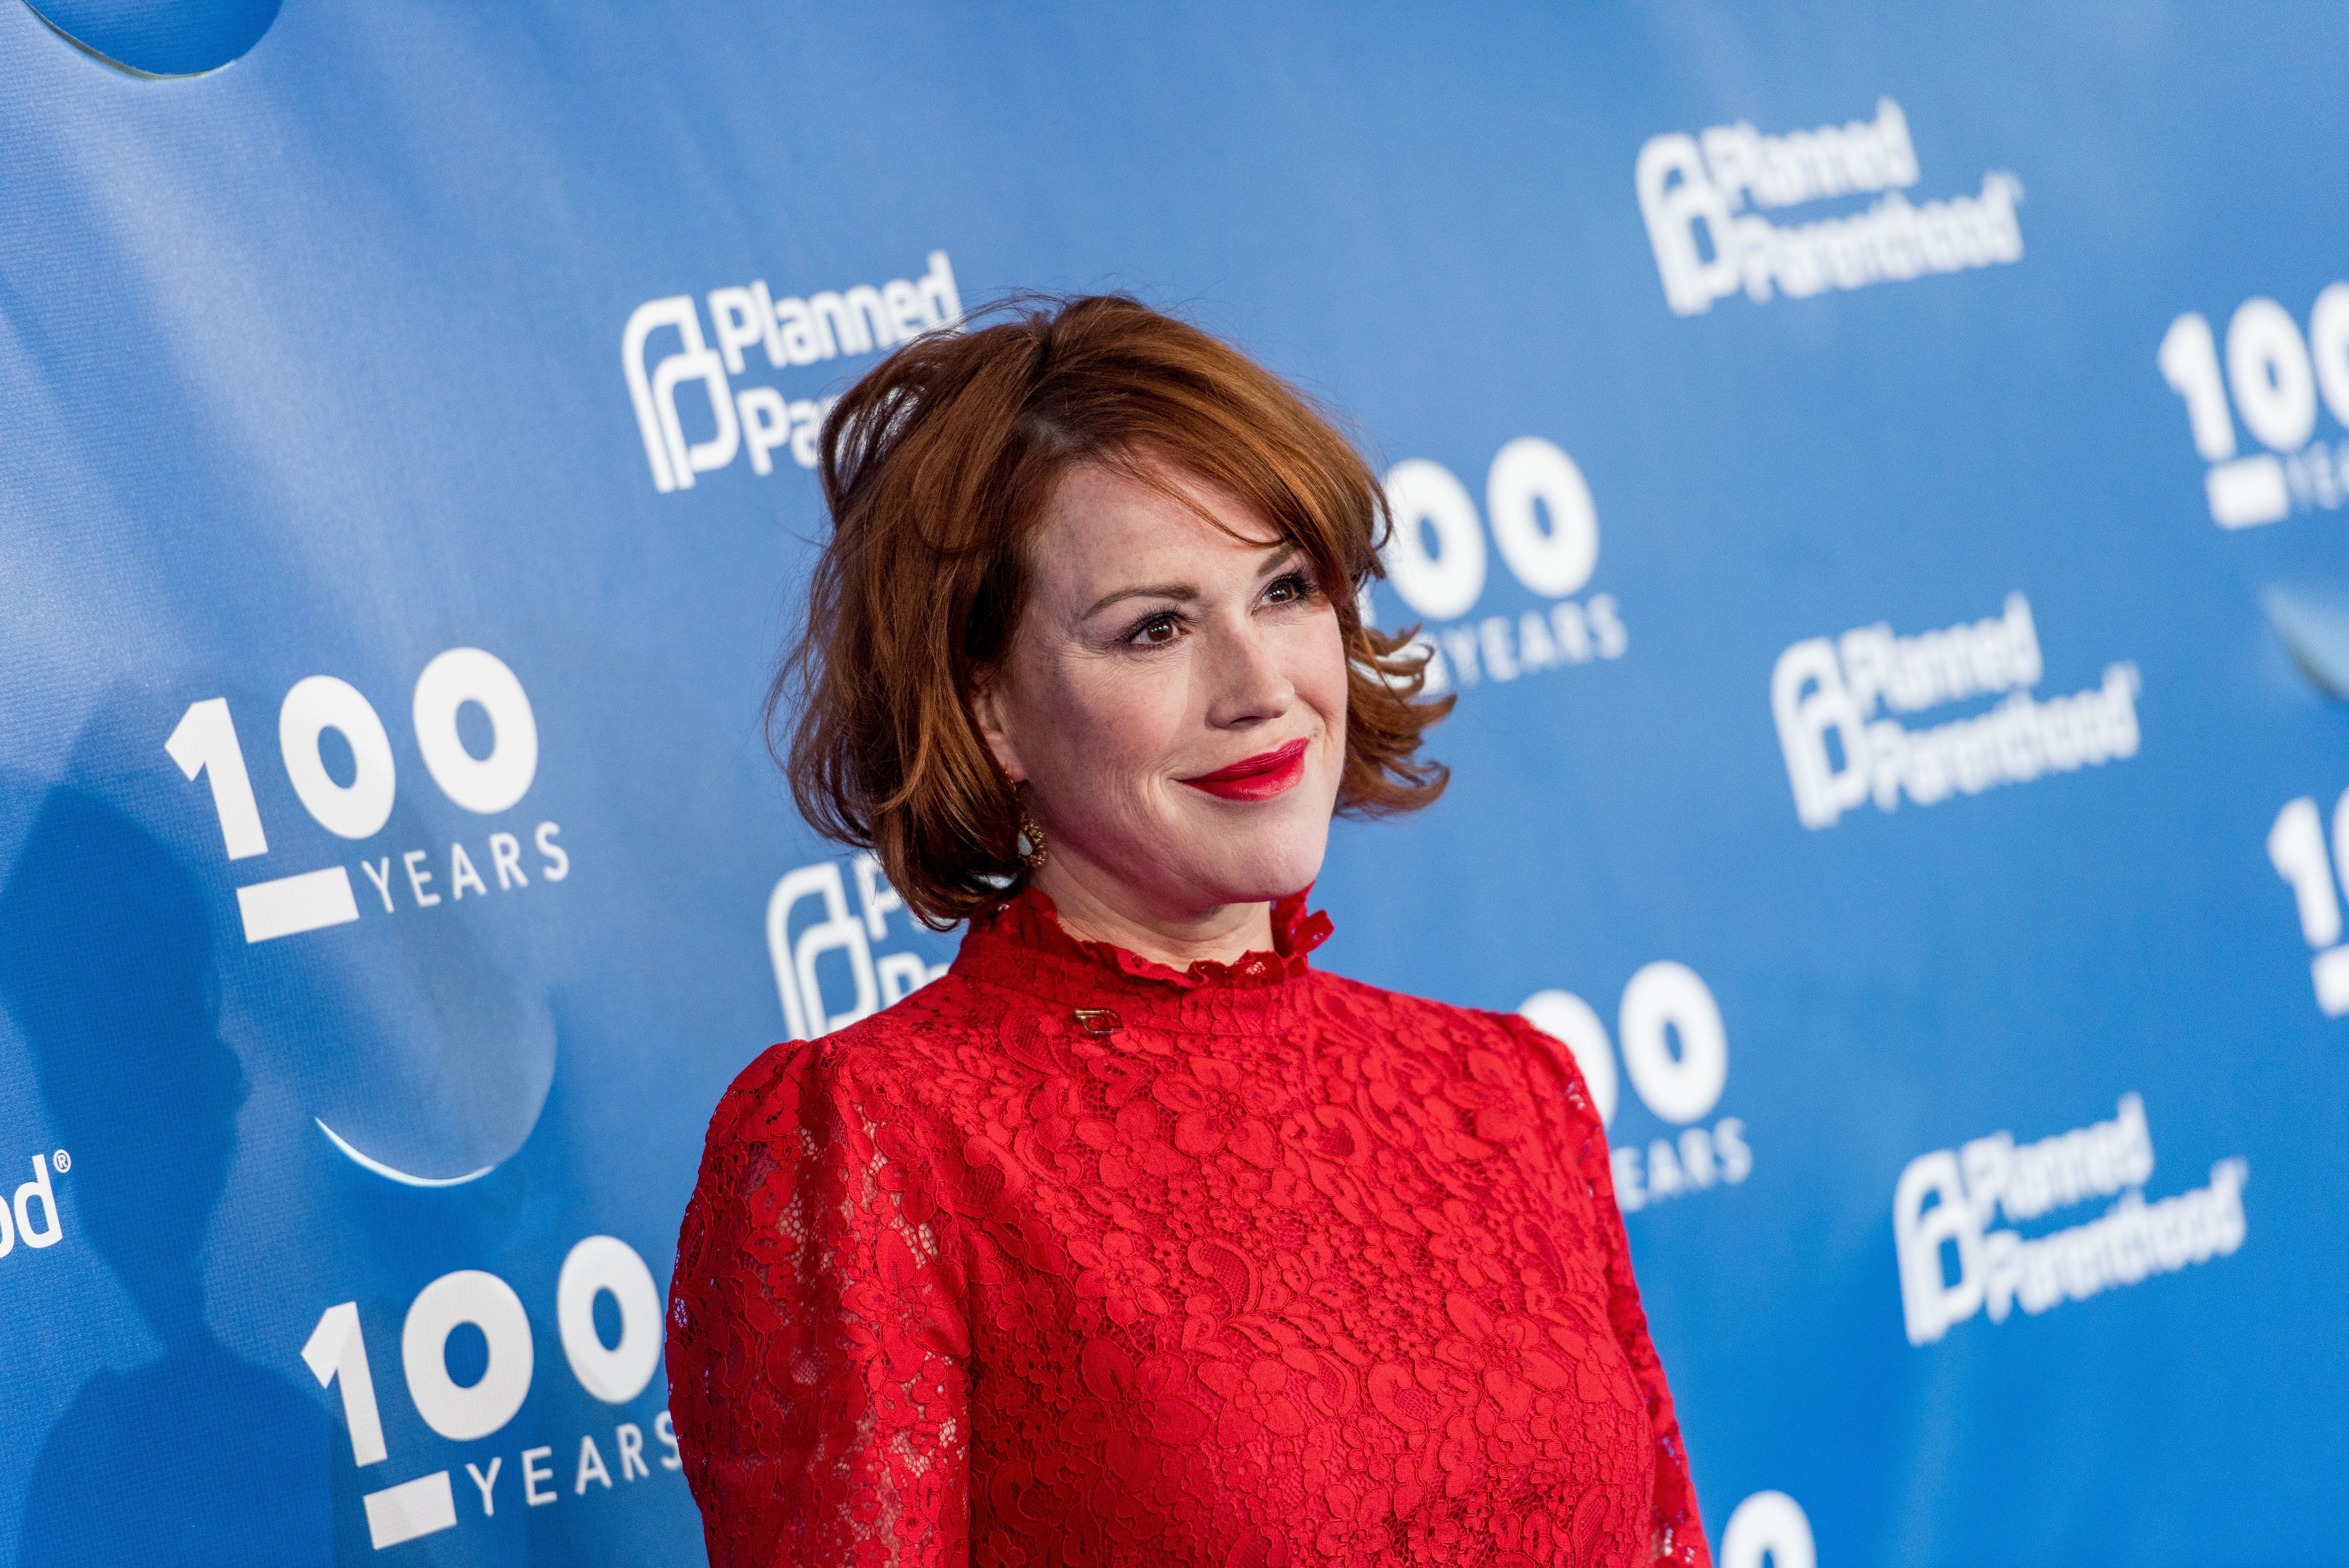 Molly Ringwald has two daughters and a son.